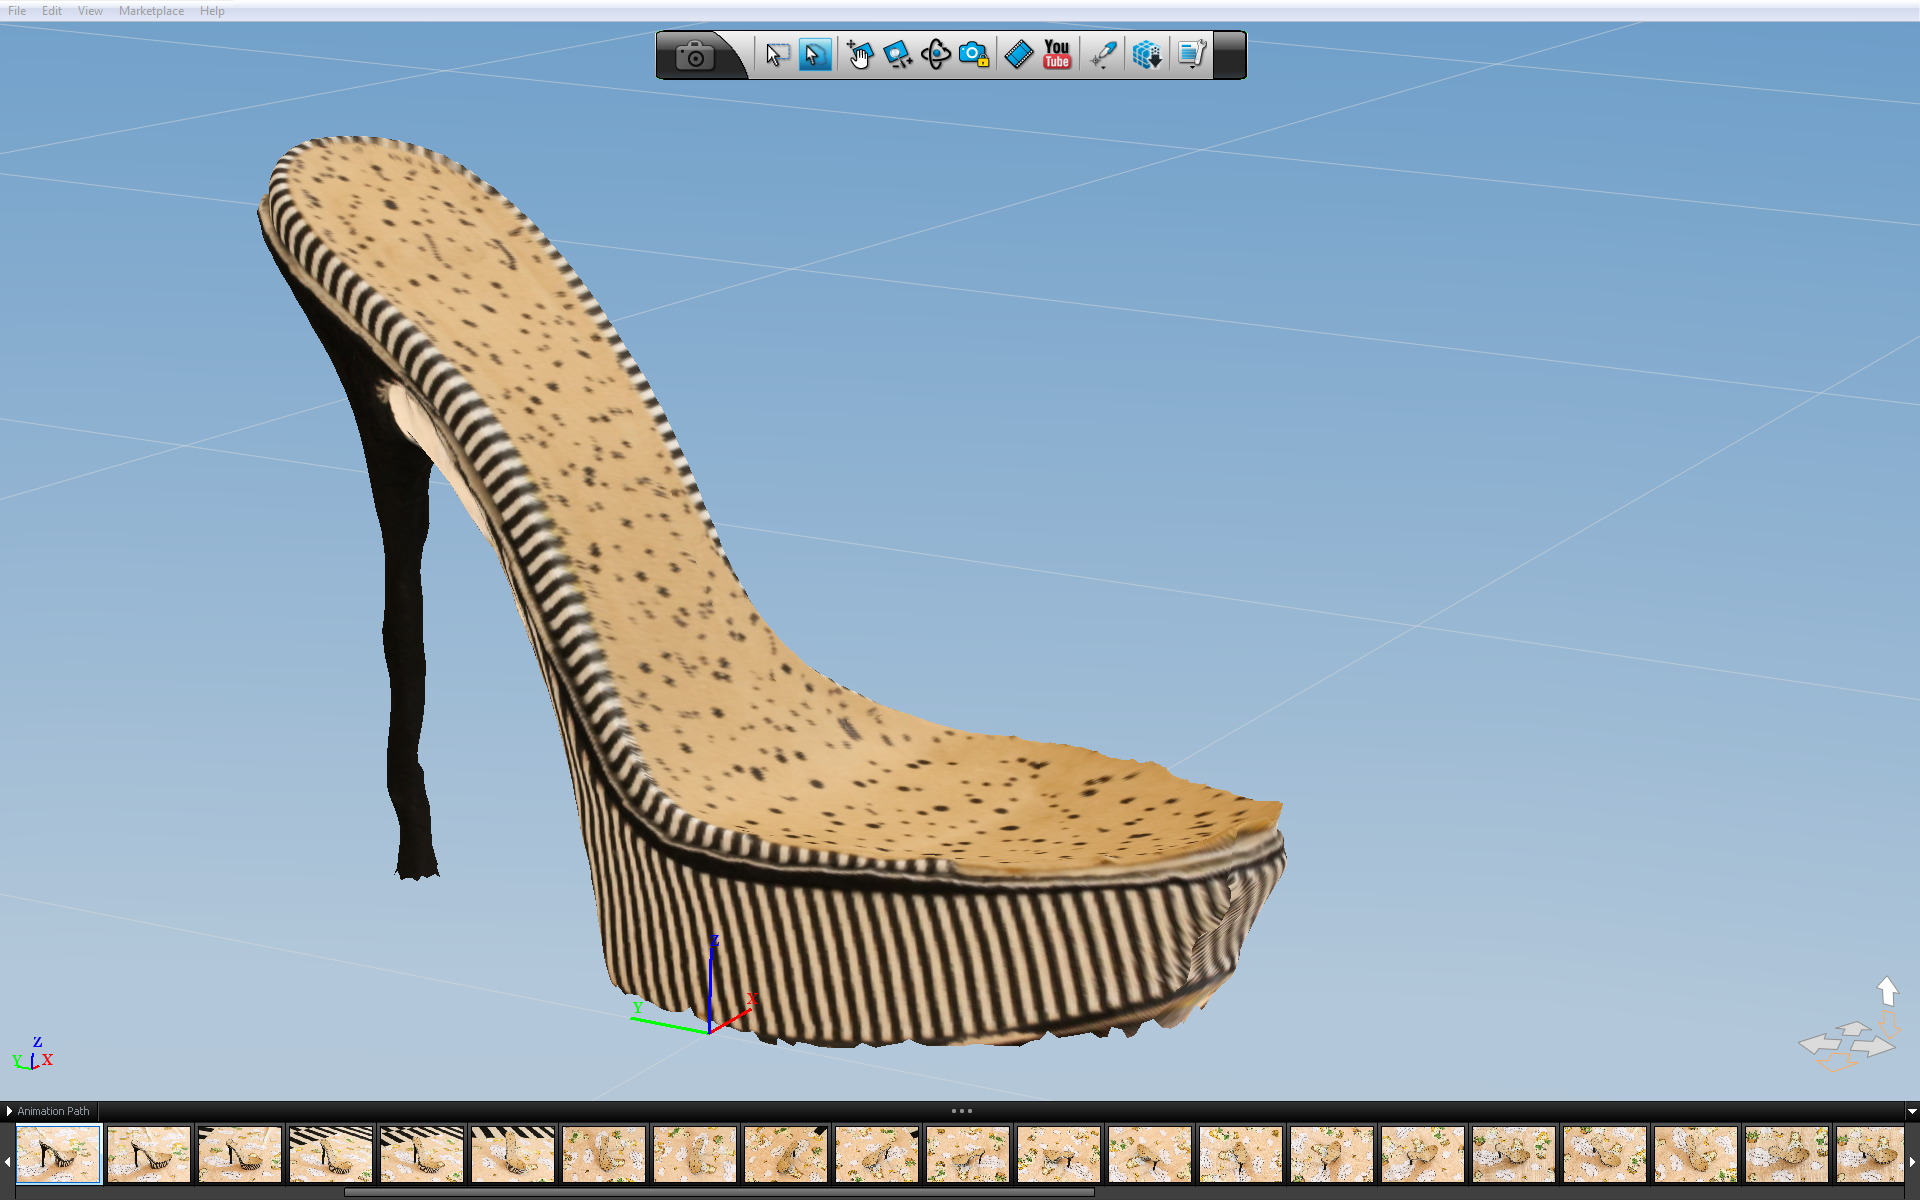 b5d5ece9c0 3D Printed High Heels - Welcome to the SeeMeCNC Community